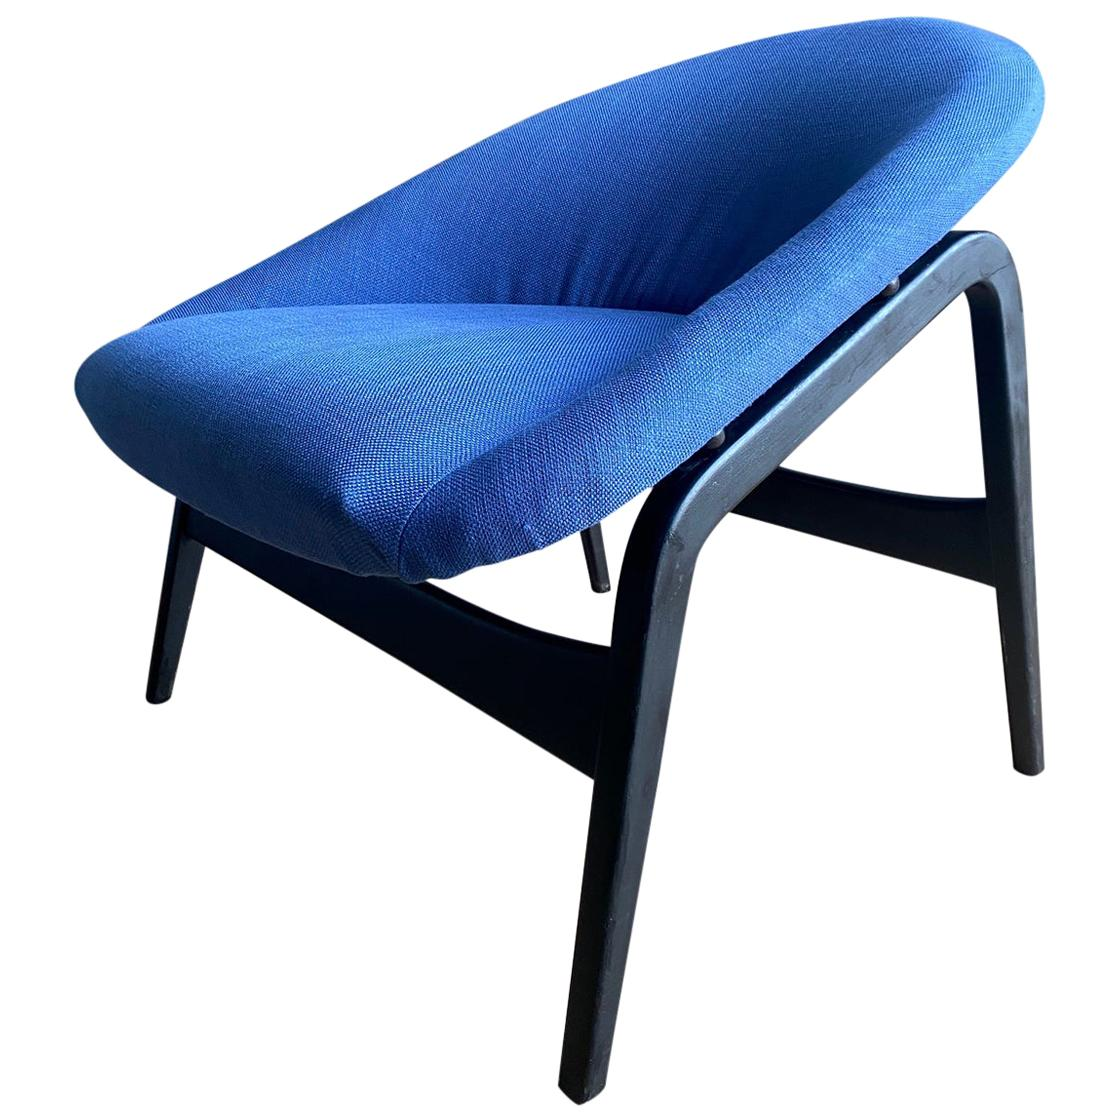 Hartmut Lohmeyer for Artifort, Blue Lounge Chair, Model Columbus, 1950s